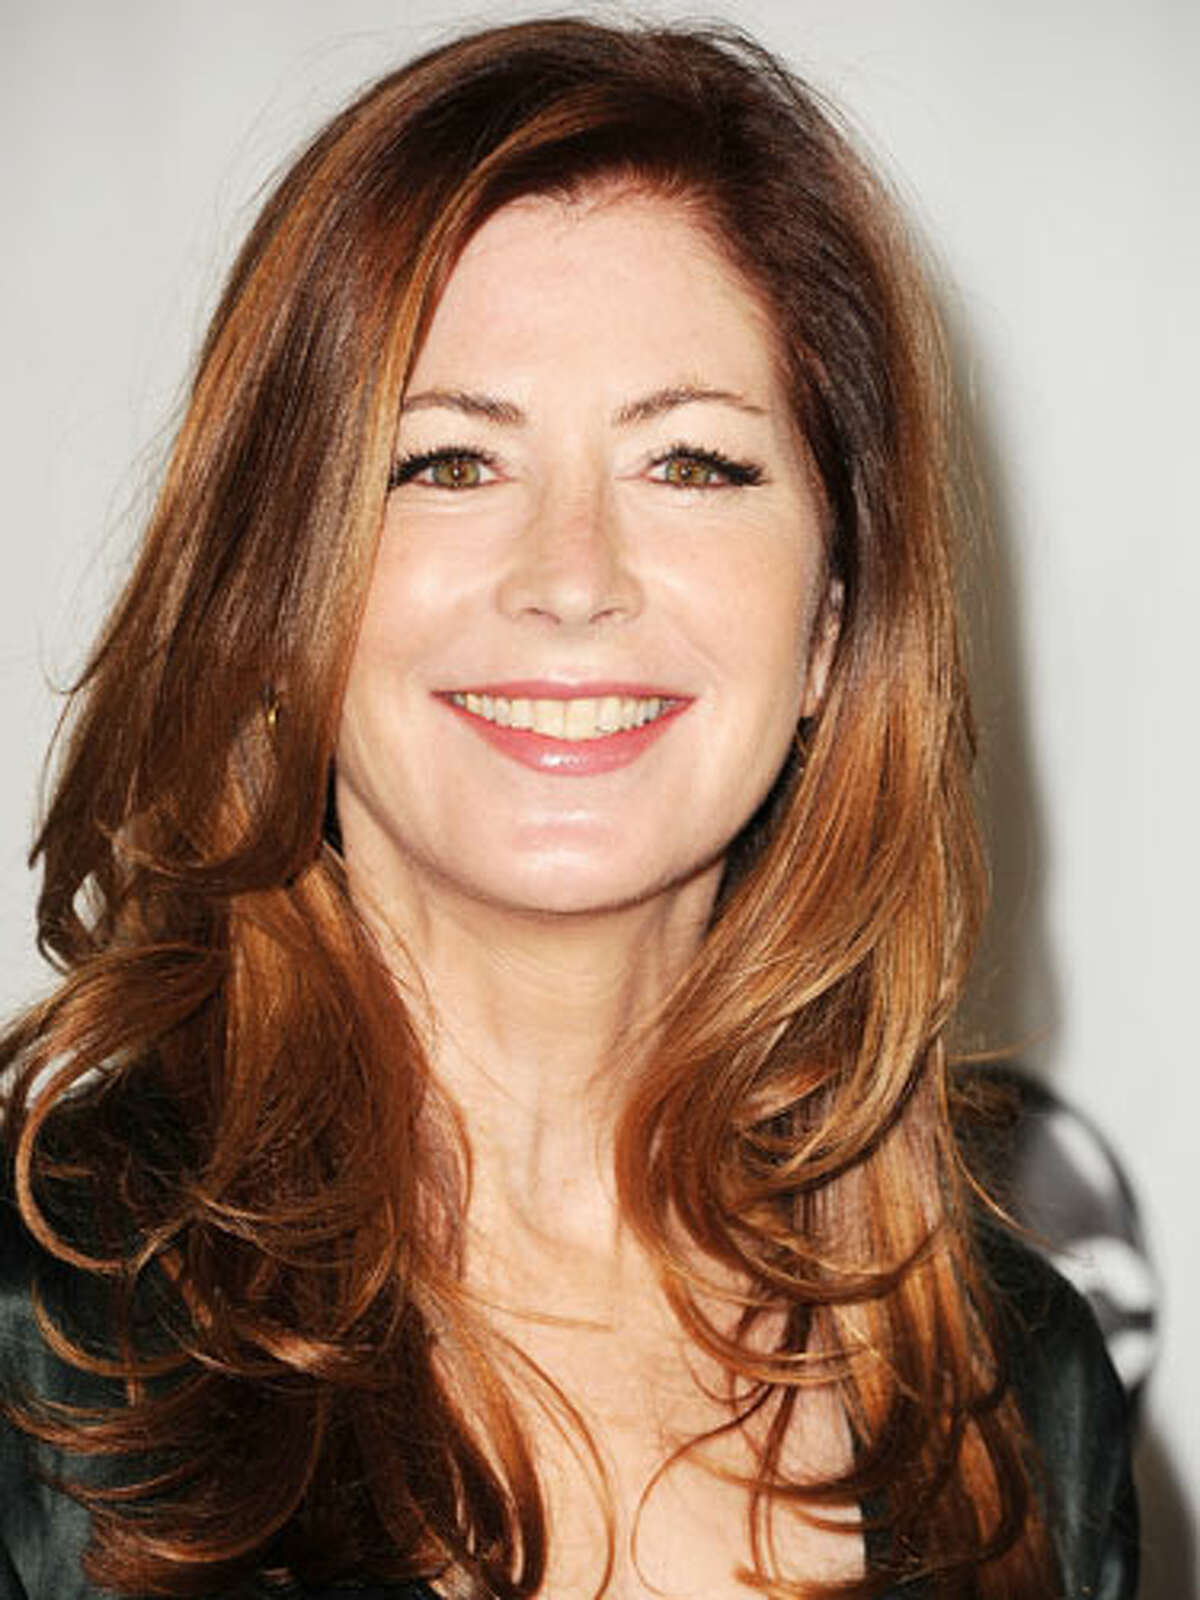 Dana Delany's Gentle Curls Dana Delany rocks gentle curls with a red glow. Her long, side-swept layers and bounce give her look a youthful feel. Born with straight hair? Take a 2-inch curling iron and curl strands away from the face. 16 Celebs Who Look Better With Age10 Biggest Hair Care MythsHaircuts That Take Off 10 Years15 Slimming Superfoods To Try in 201310 Ways To Build Your Sexual Confidence